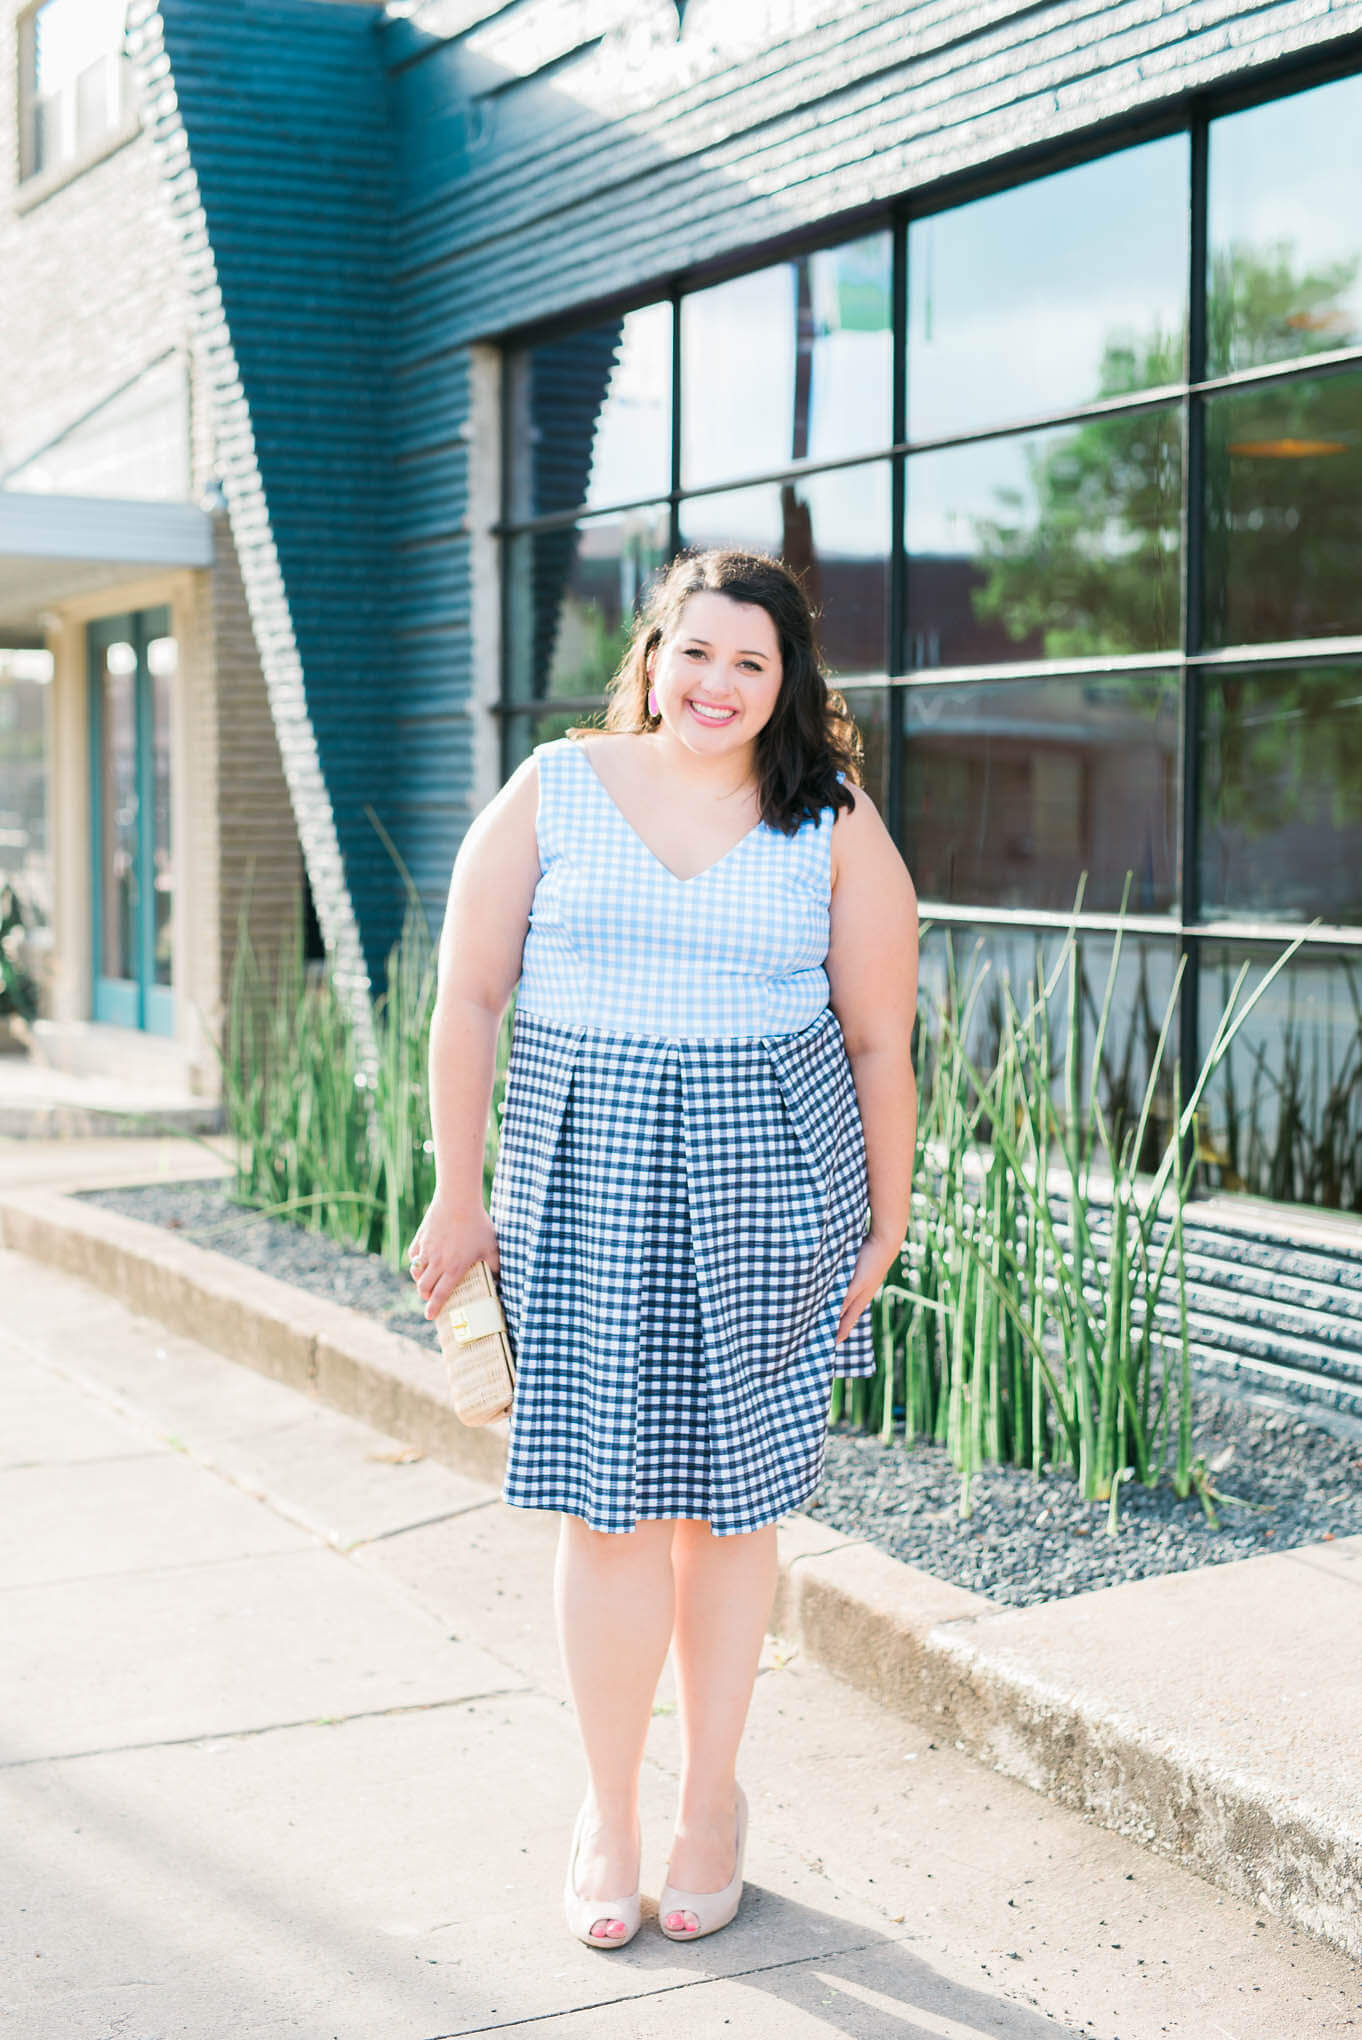 The perfect wedding attire for the summer to fall transition by Emily Bastedo from Something Gold, Something Blue featuring the Eloquii Blue and White Gingham Dress